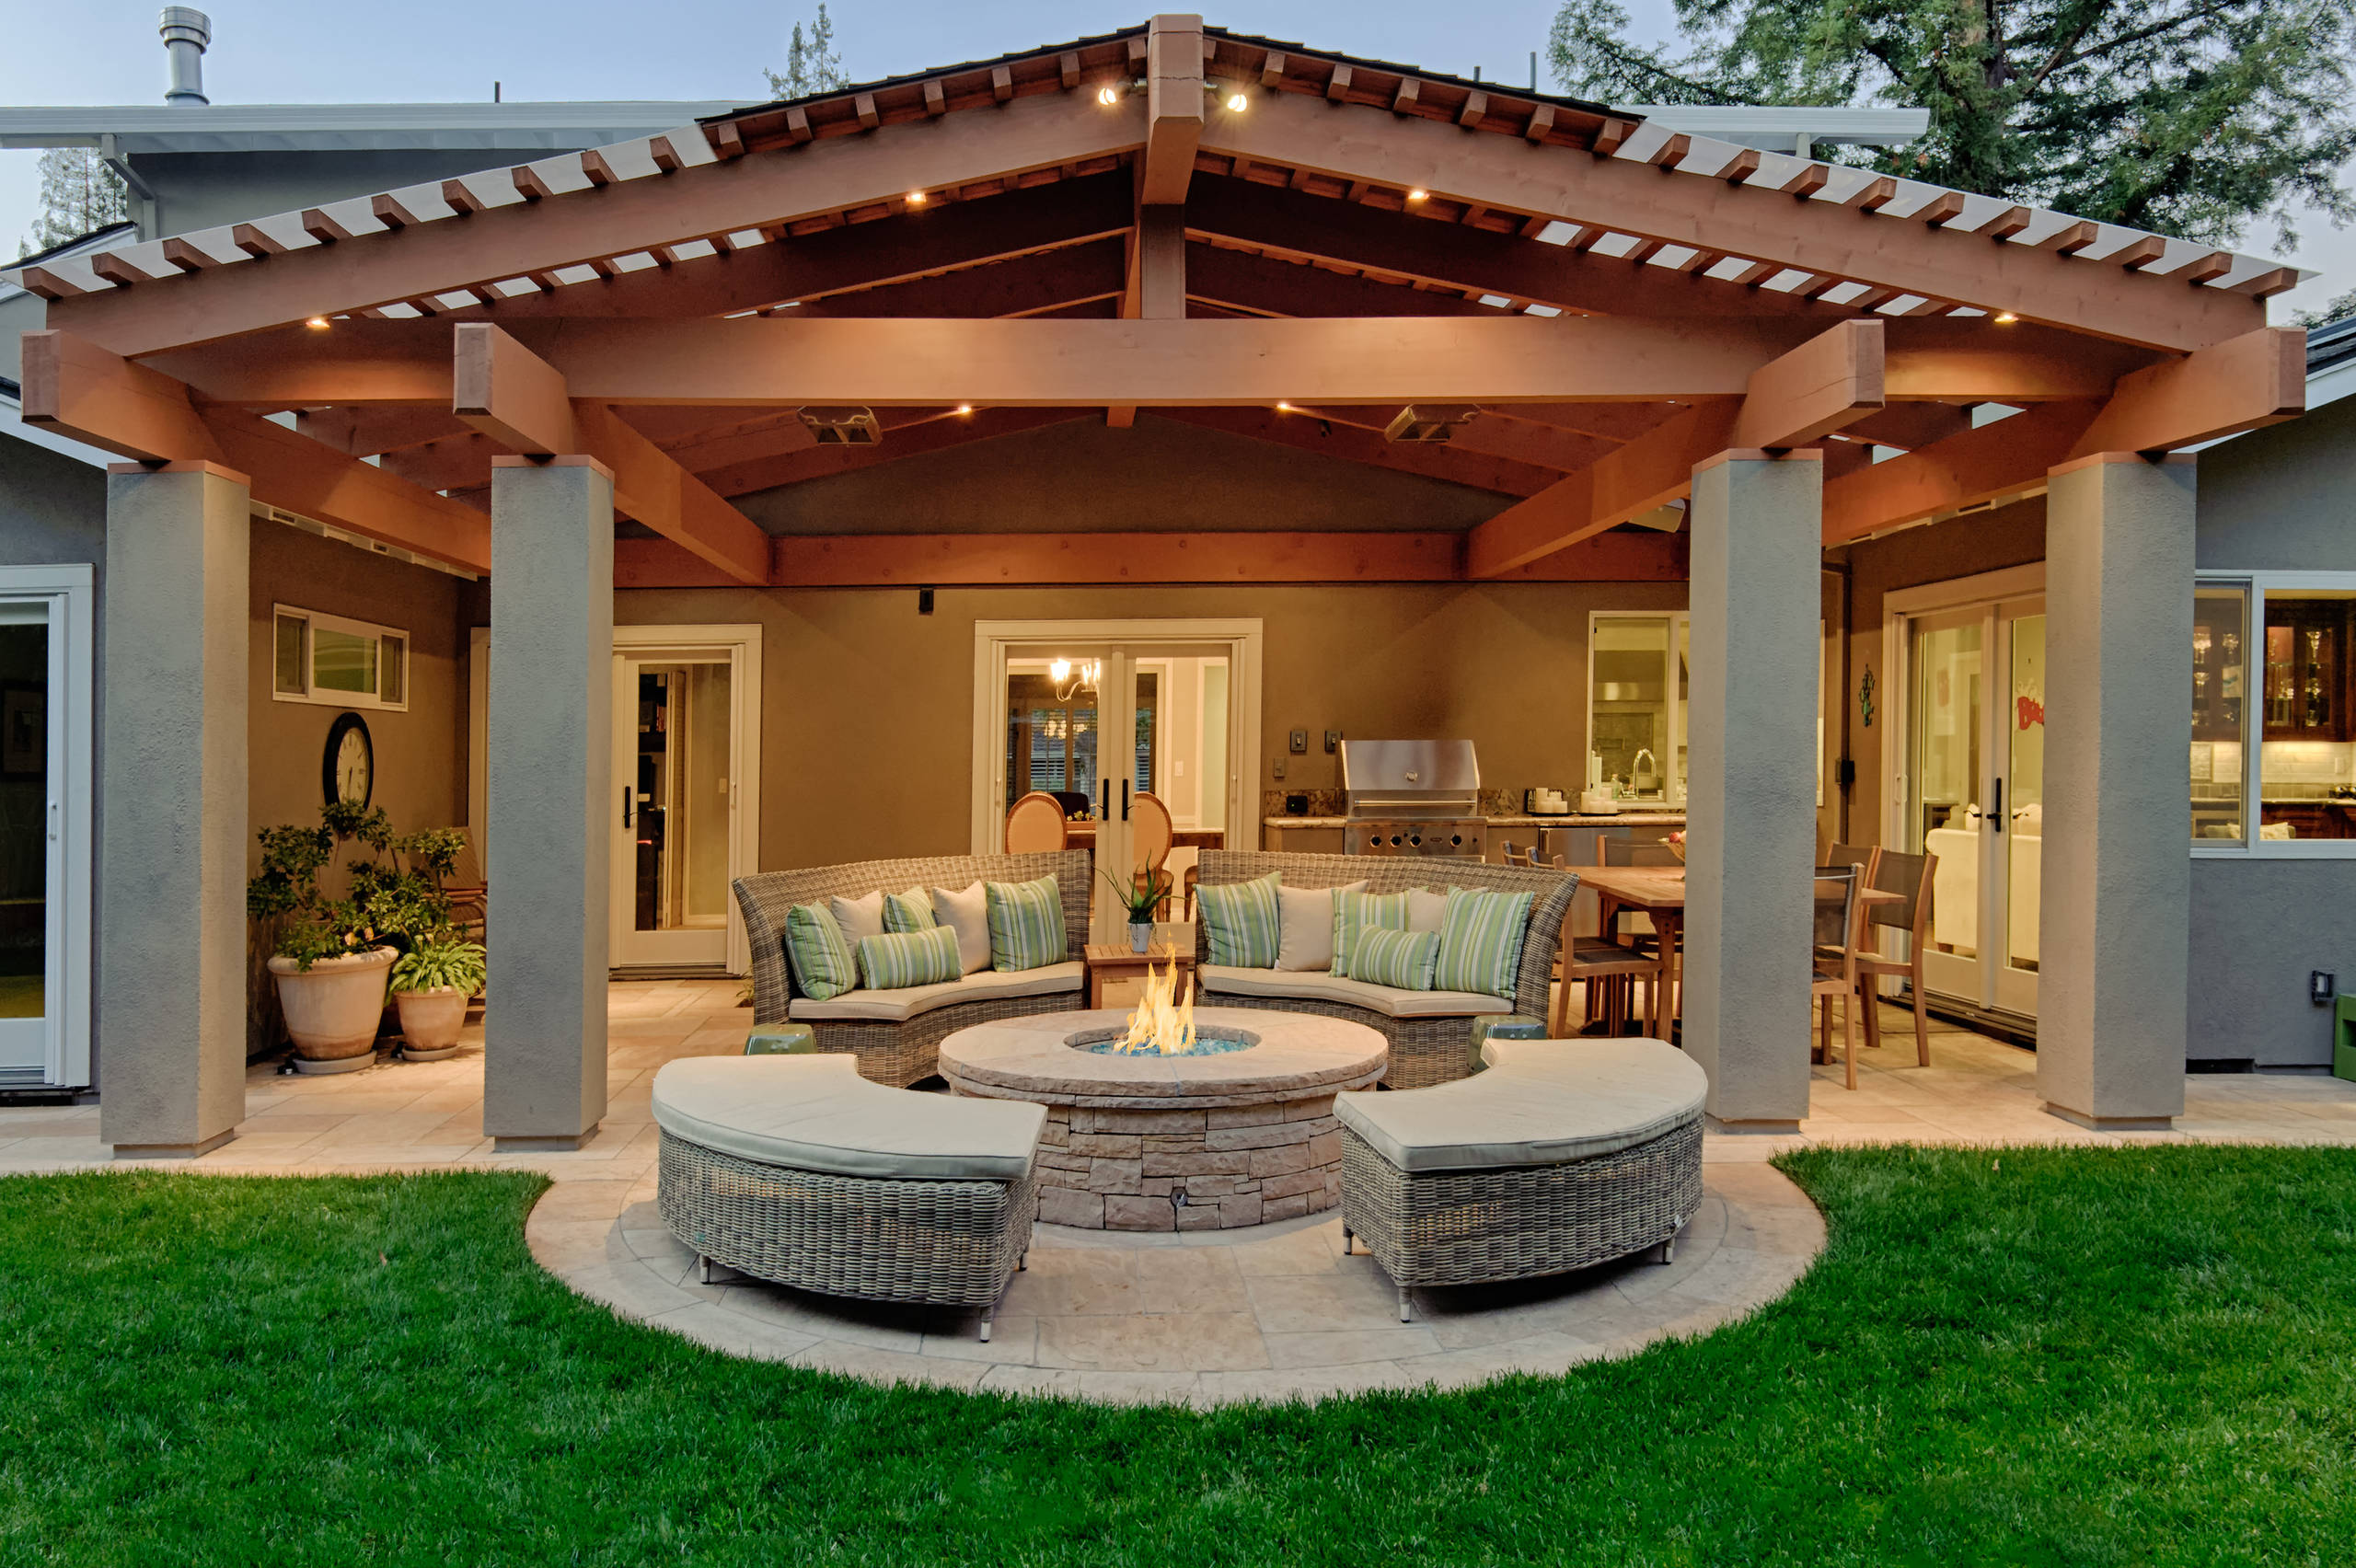 Post and beam construction Traditional Patio Covered Patio exposed beams gable roof cobblestone firepit outdoor cushions